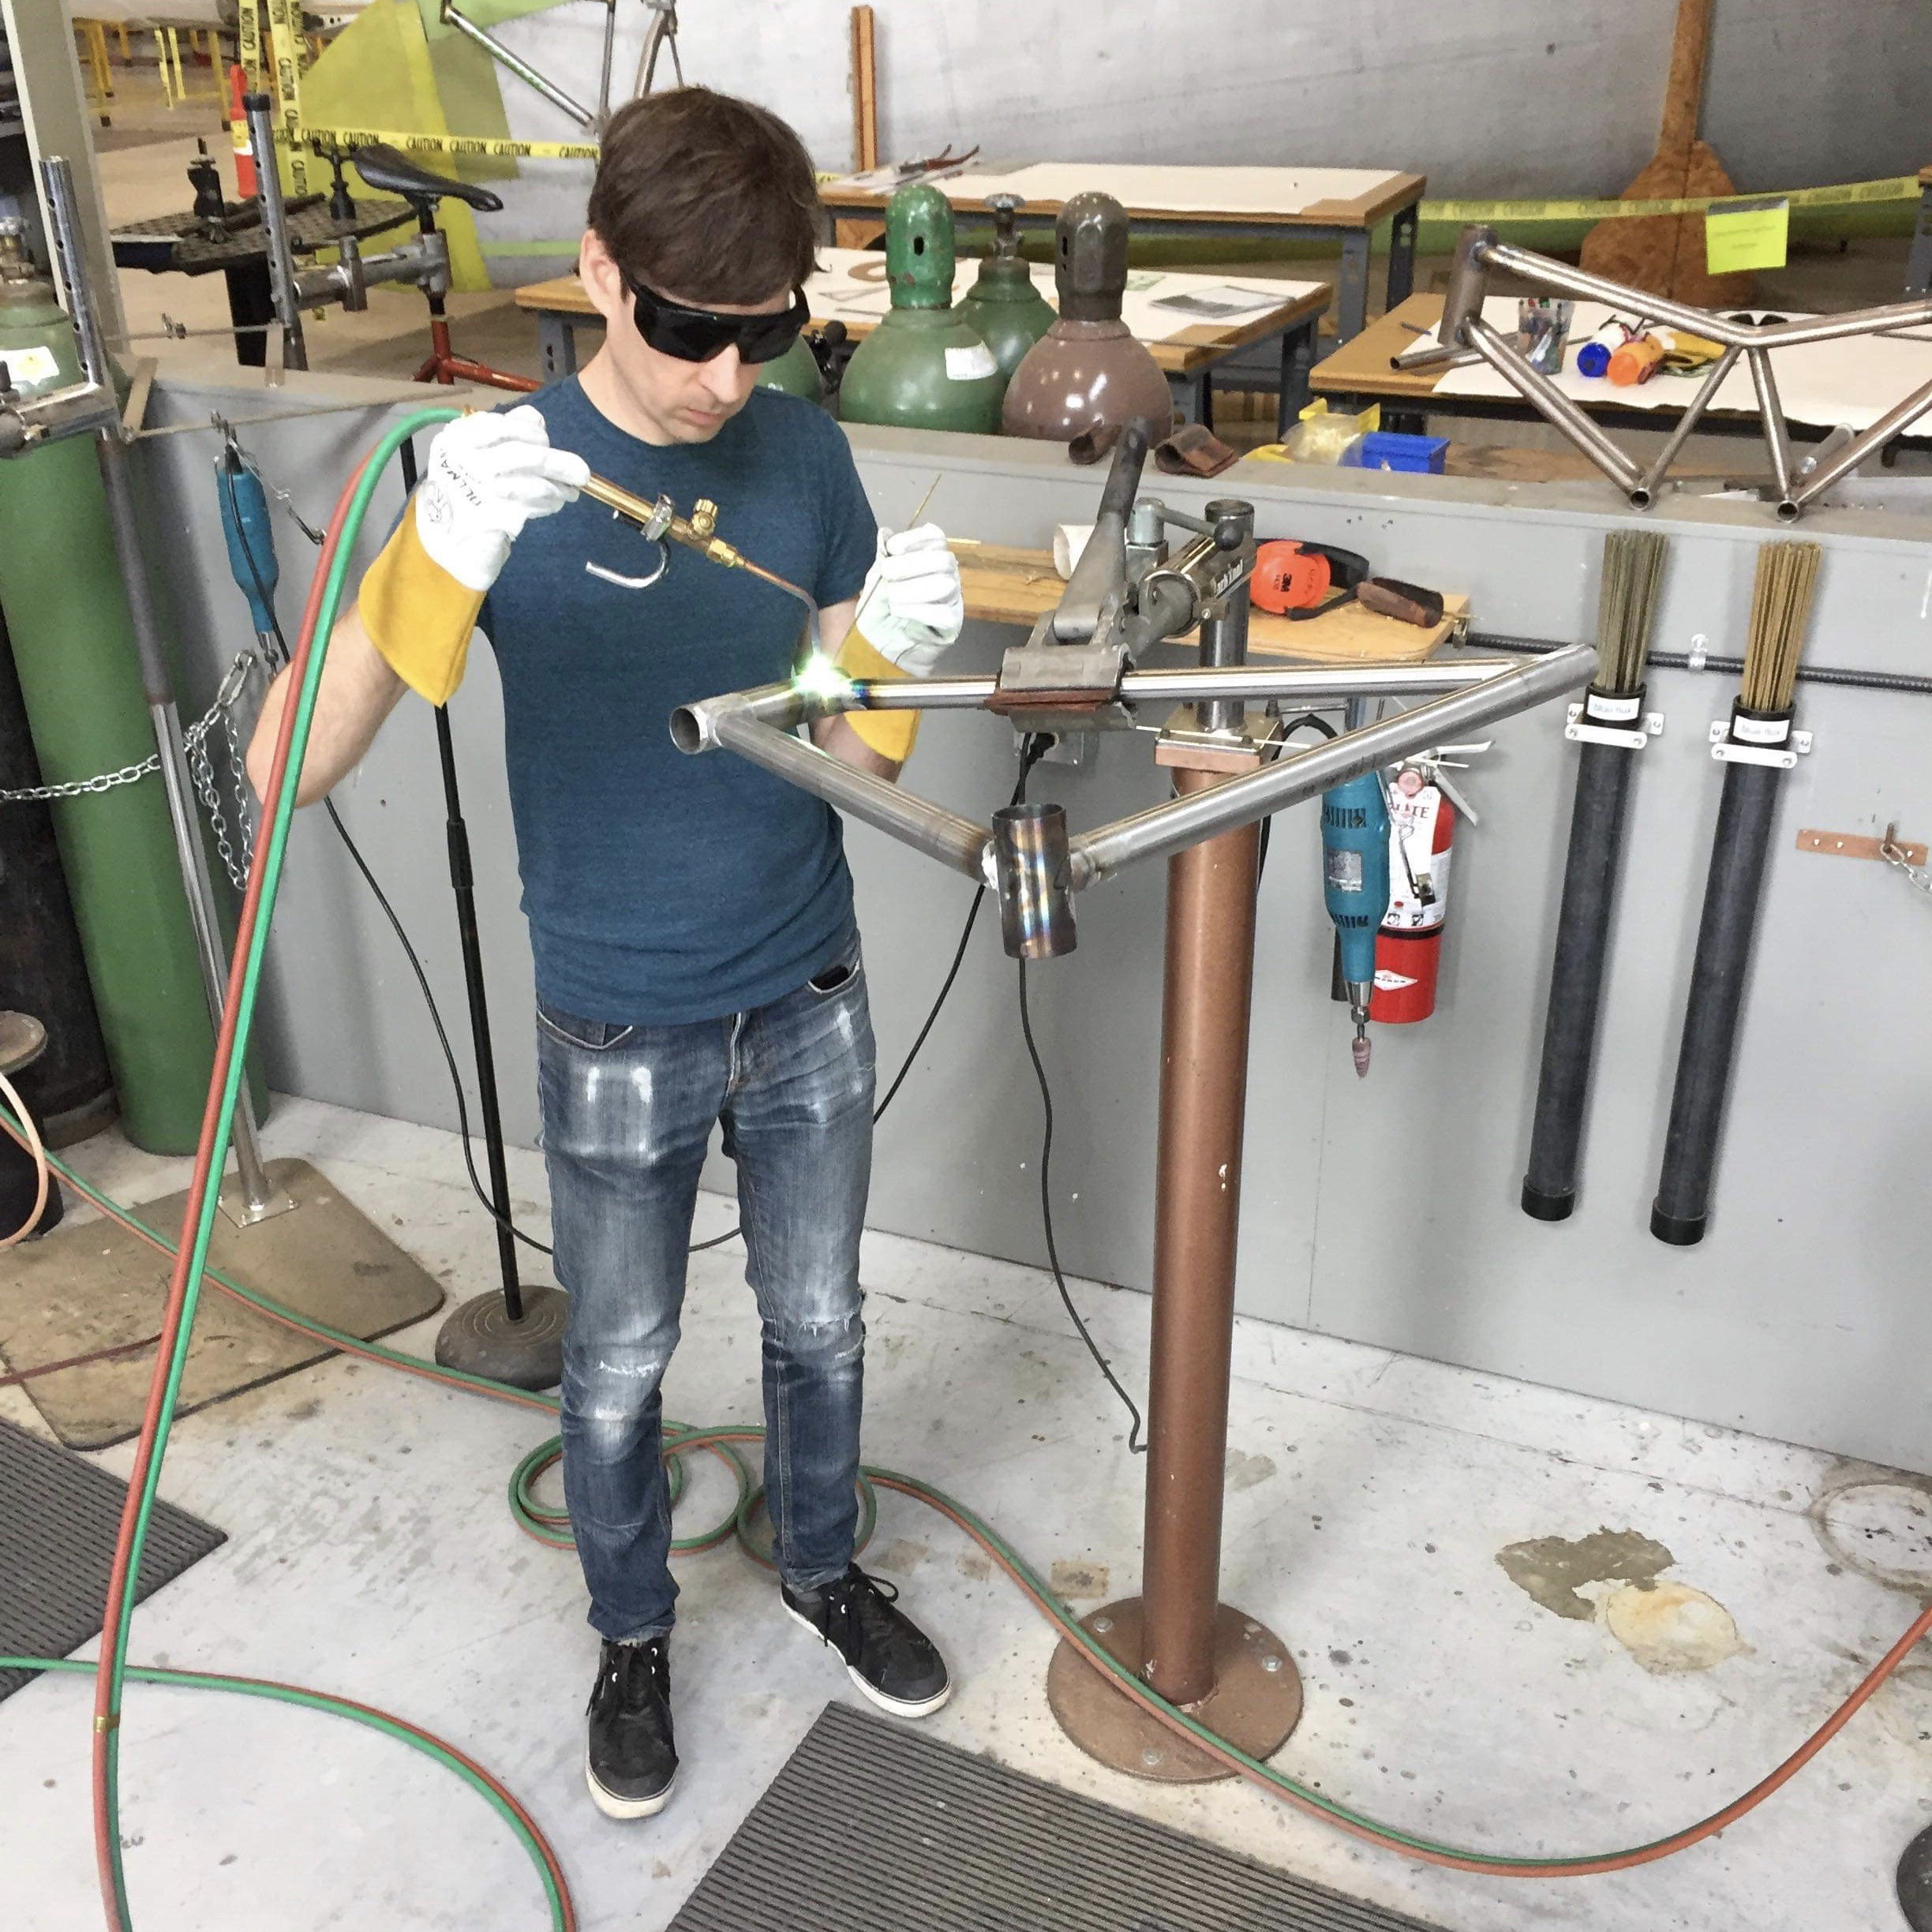 A man welding a bicycle frame